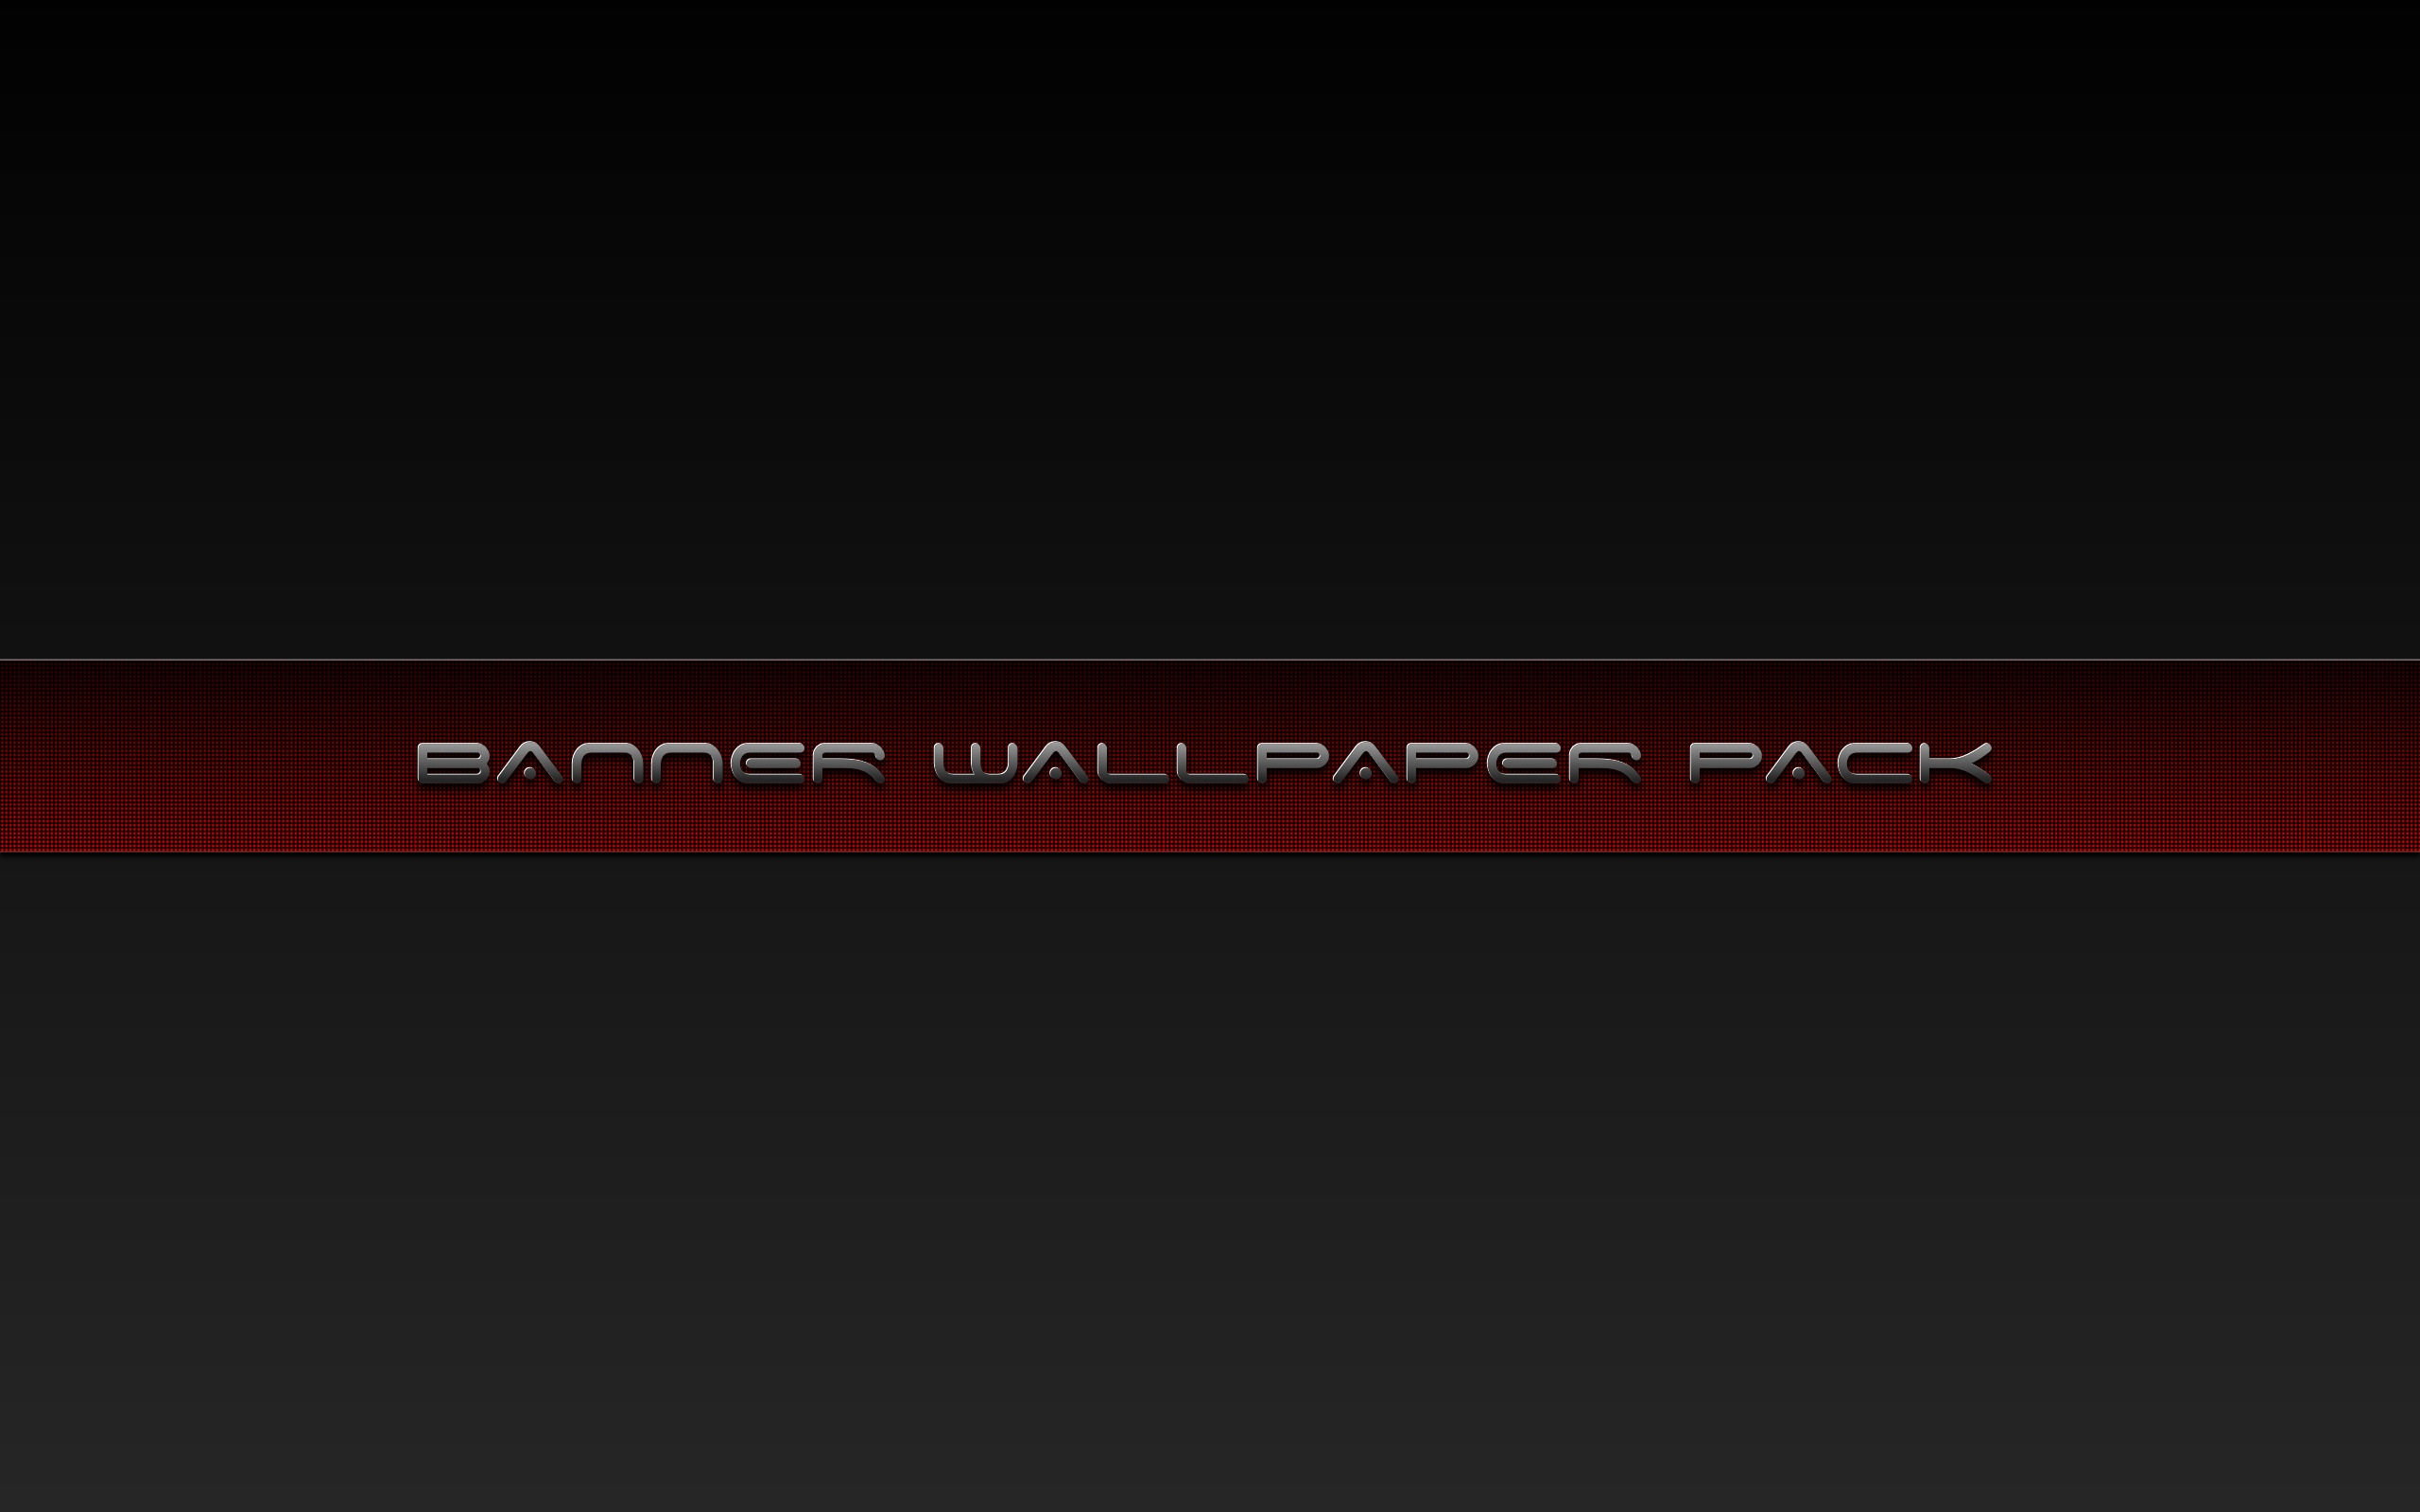 Banner Wallpaper Pack by TaylorCohron 2560x1600